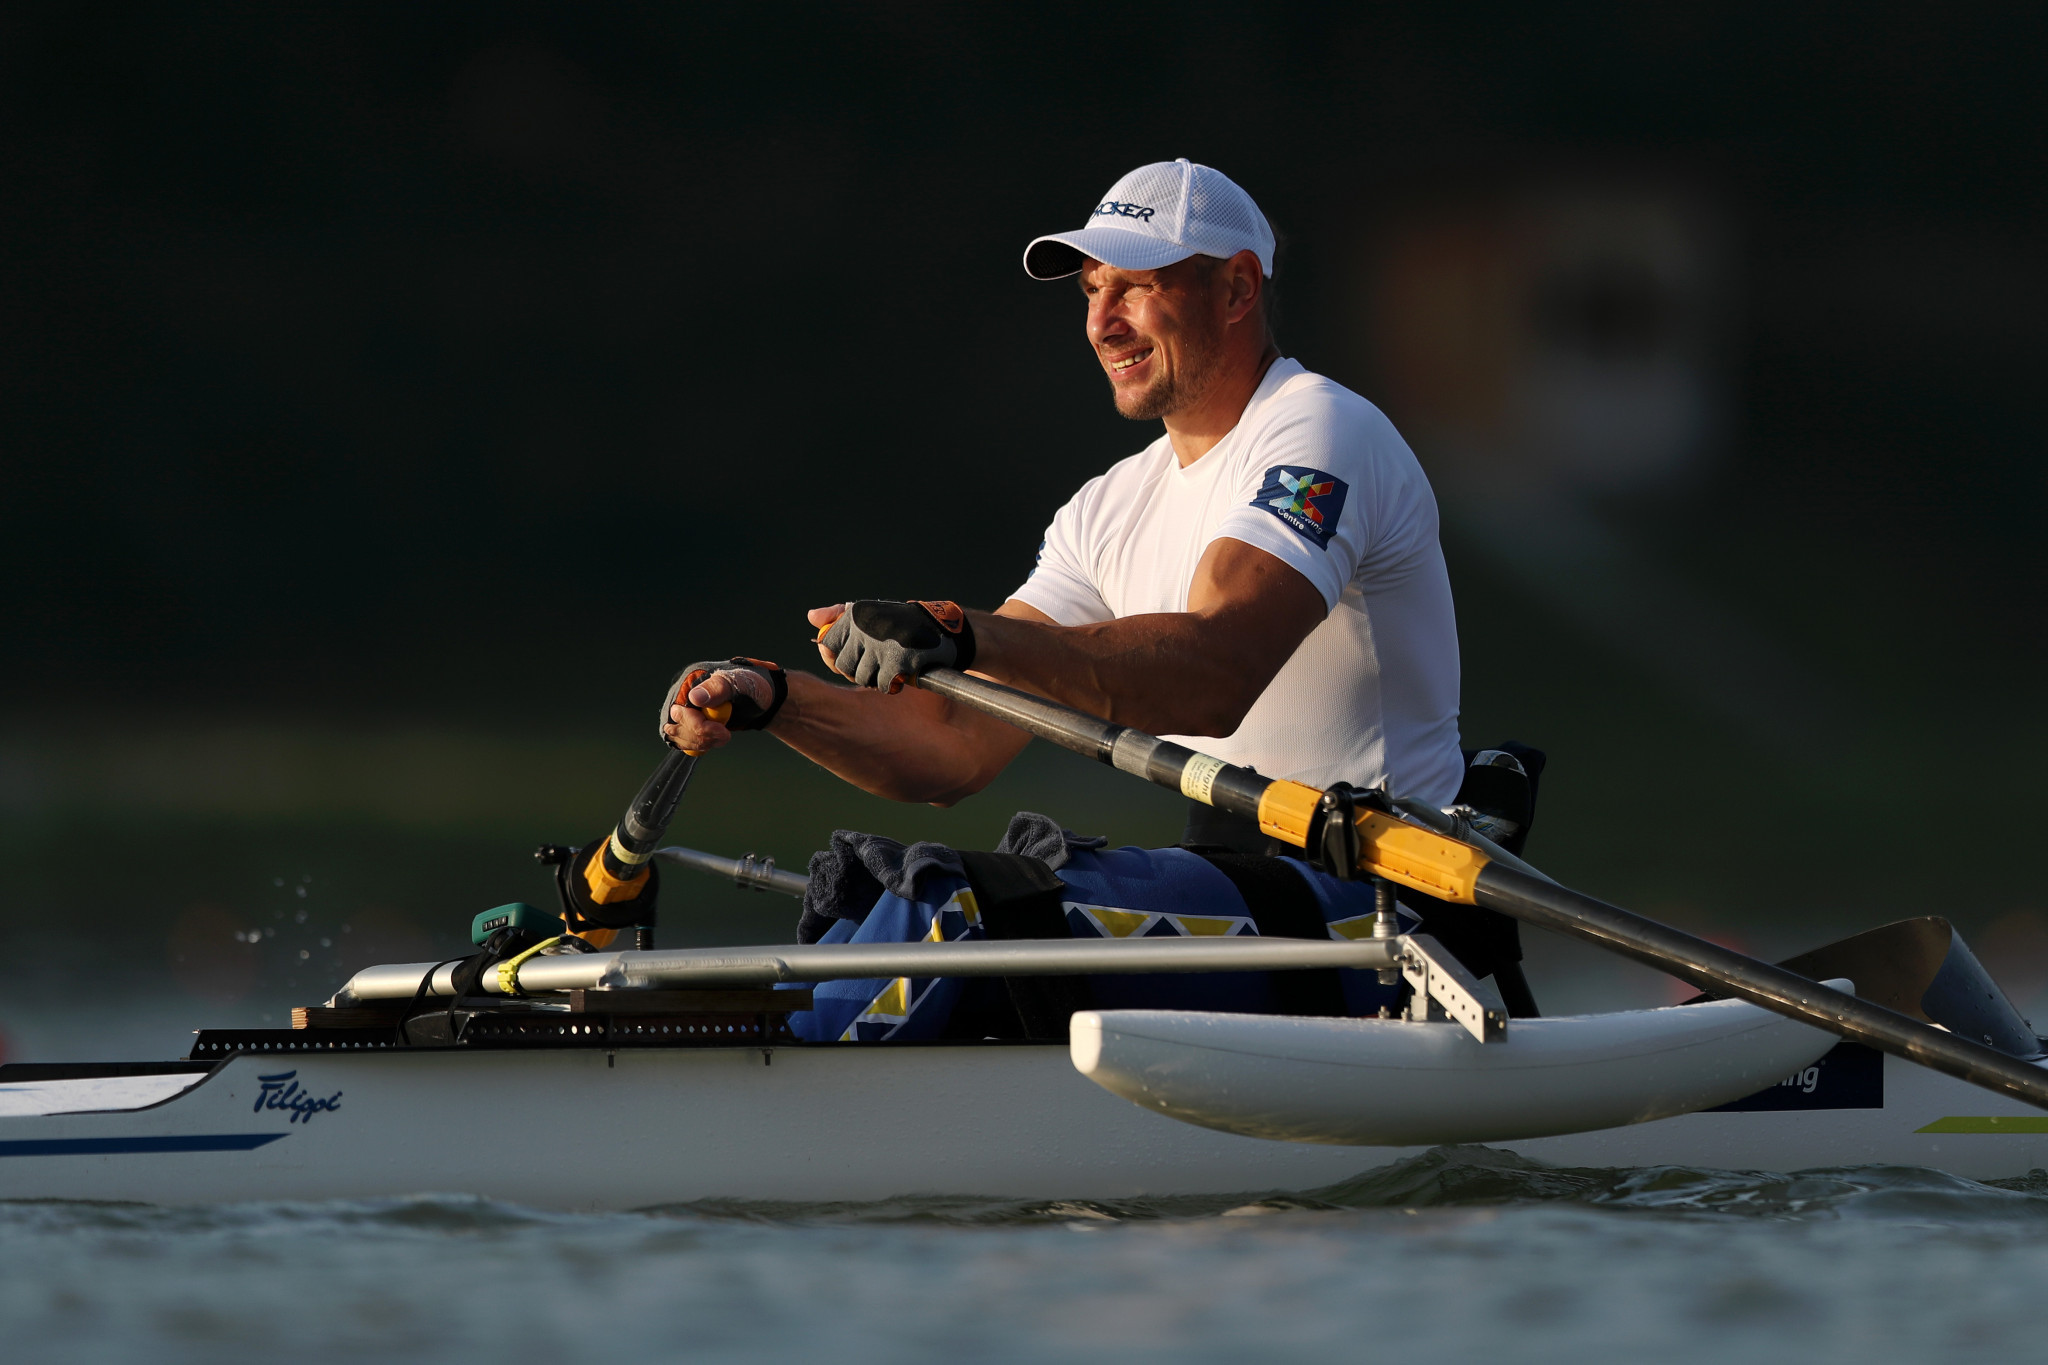 Polianskyi aims to defend single sculls rowing title at Tokyo 2020 Paralympics